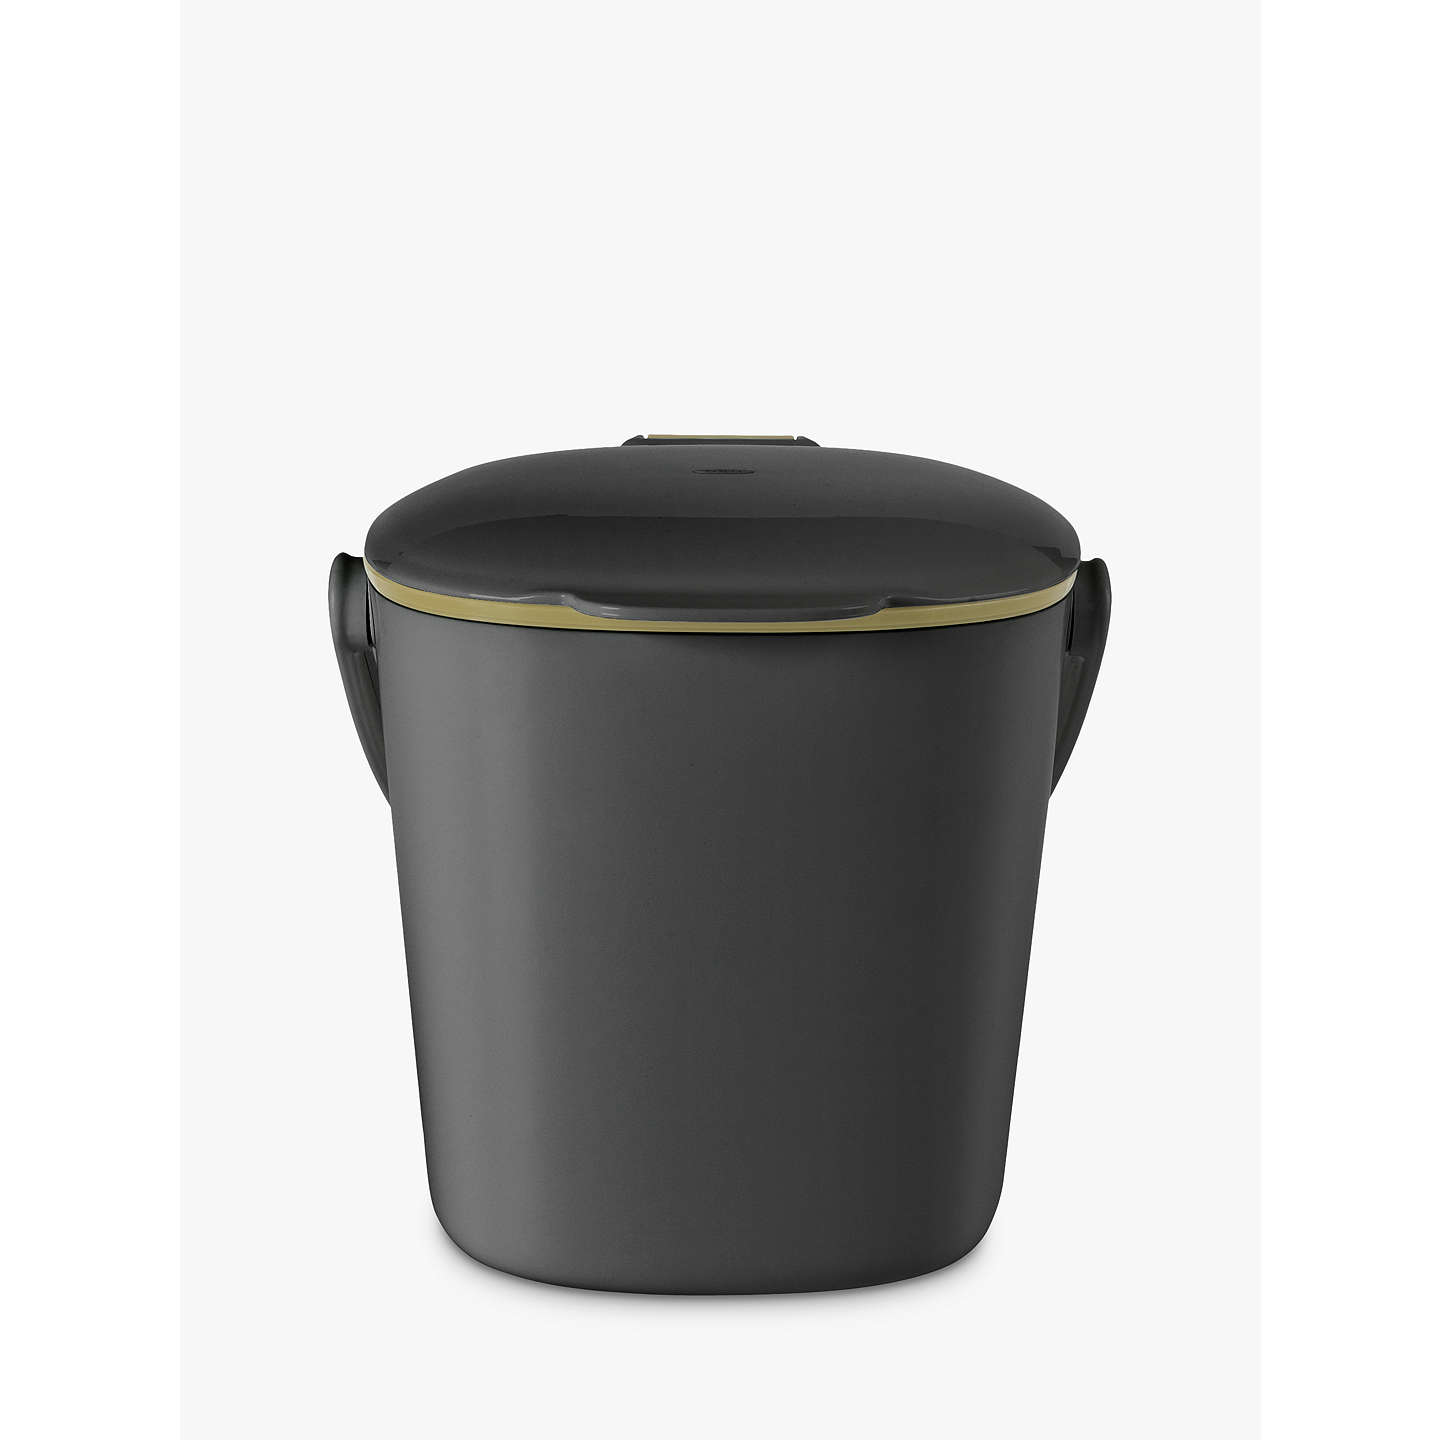 BuyOXO Compost Caddy, Grey Online at johnlewis.com